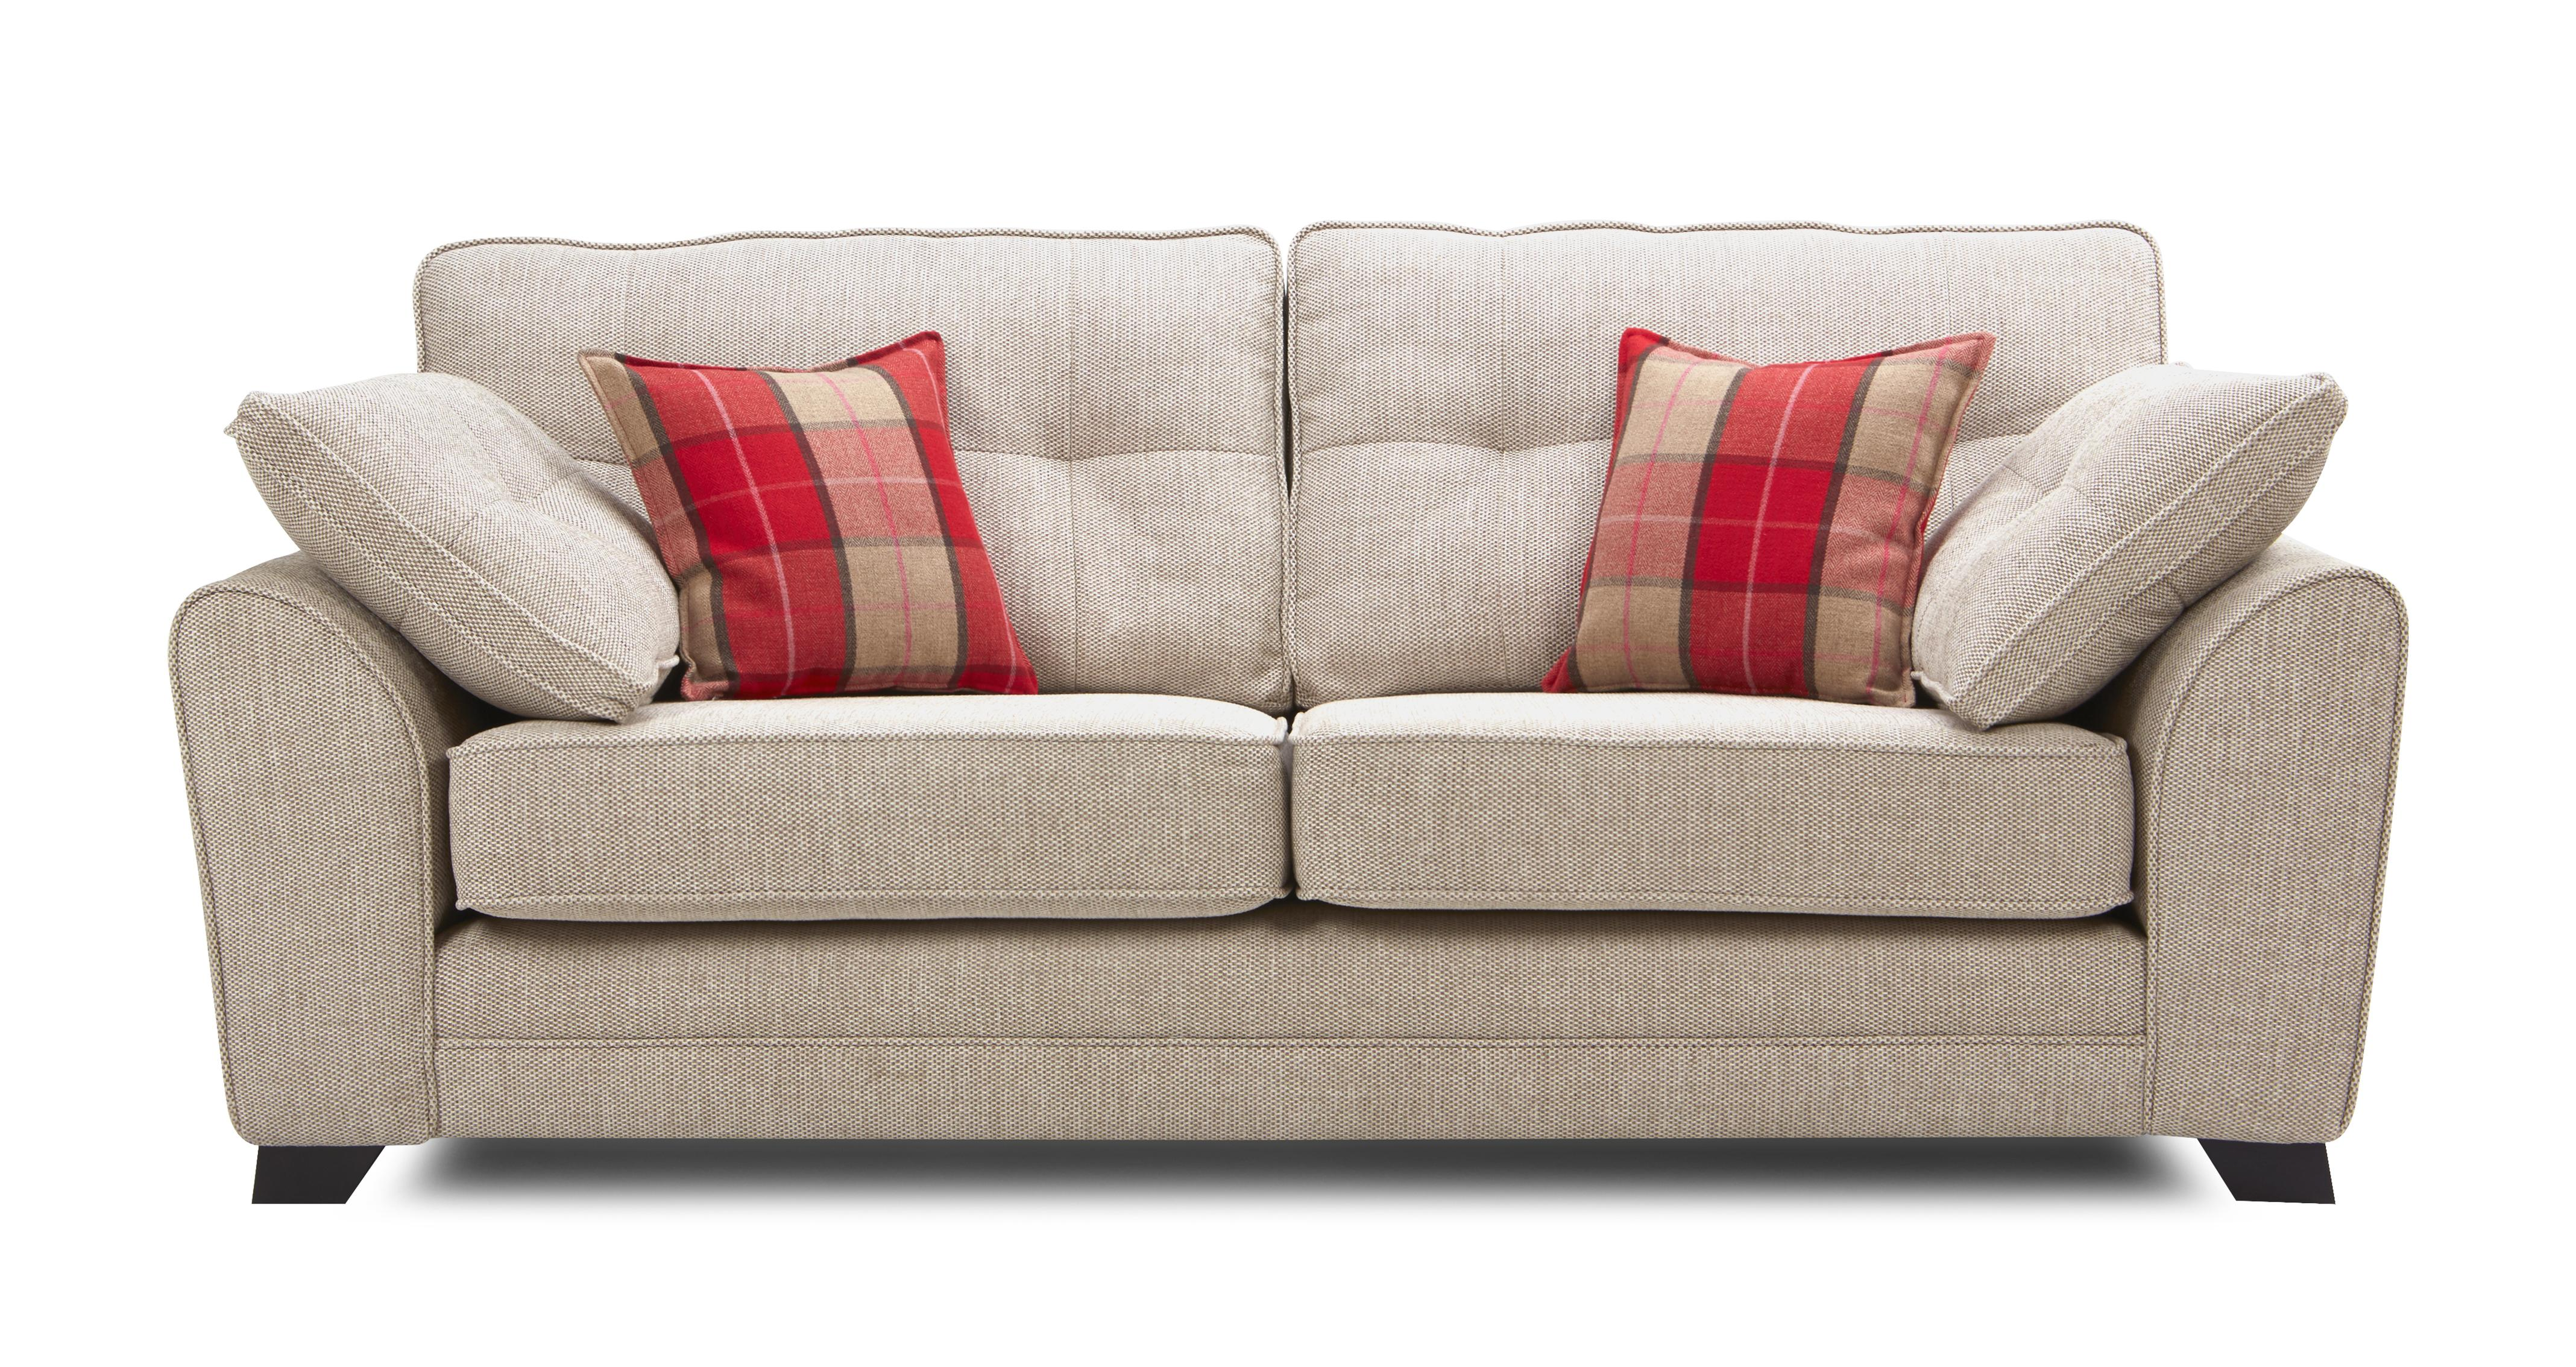 Perfect Winslow 3 Seater Sofa Keeper | DFS